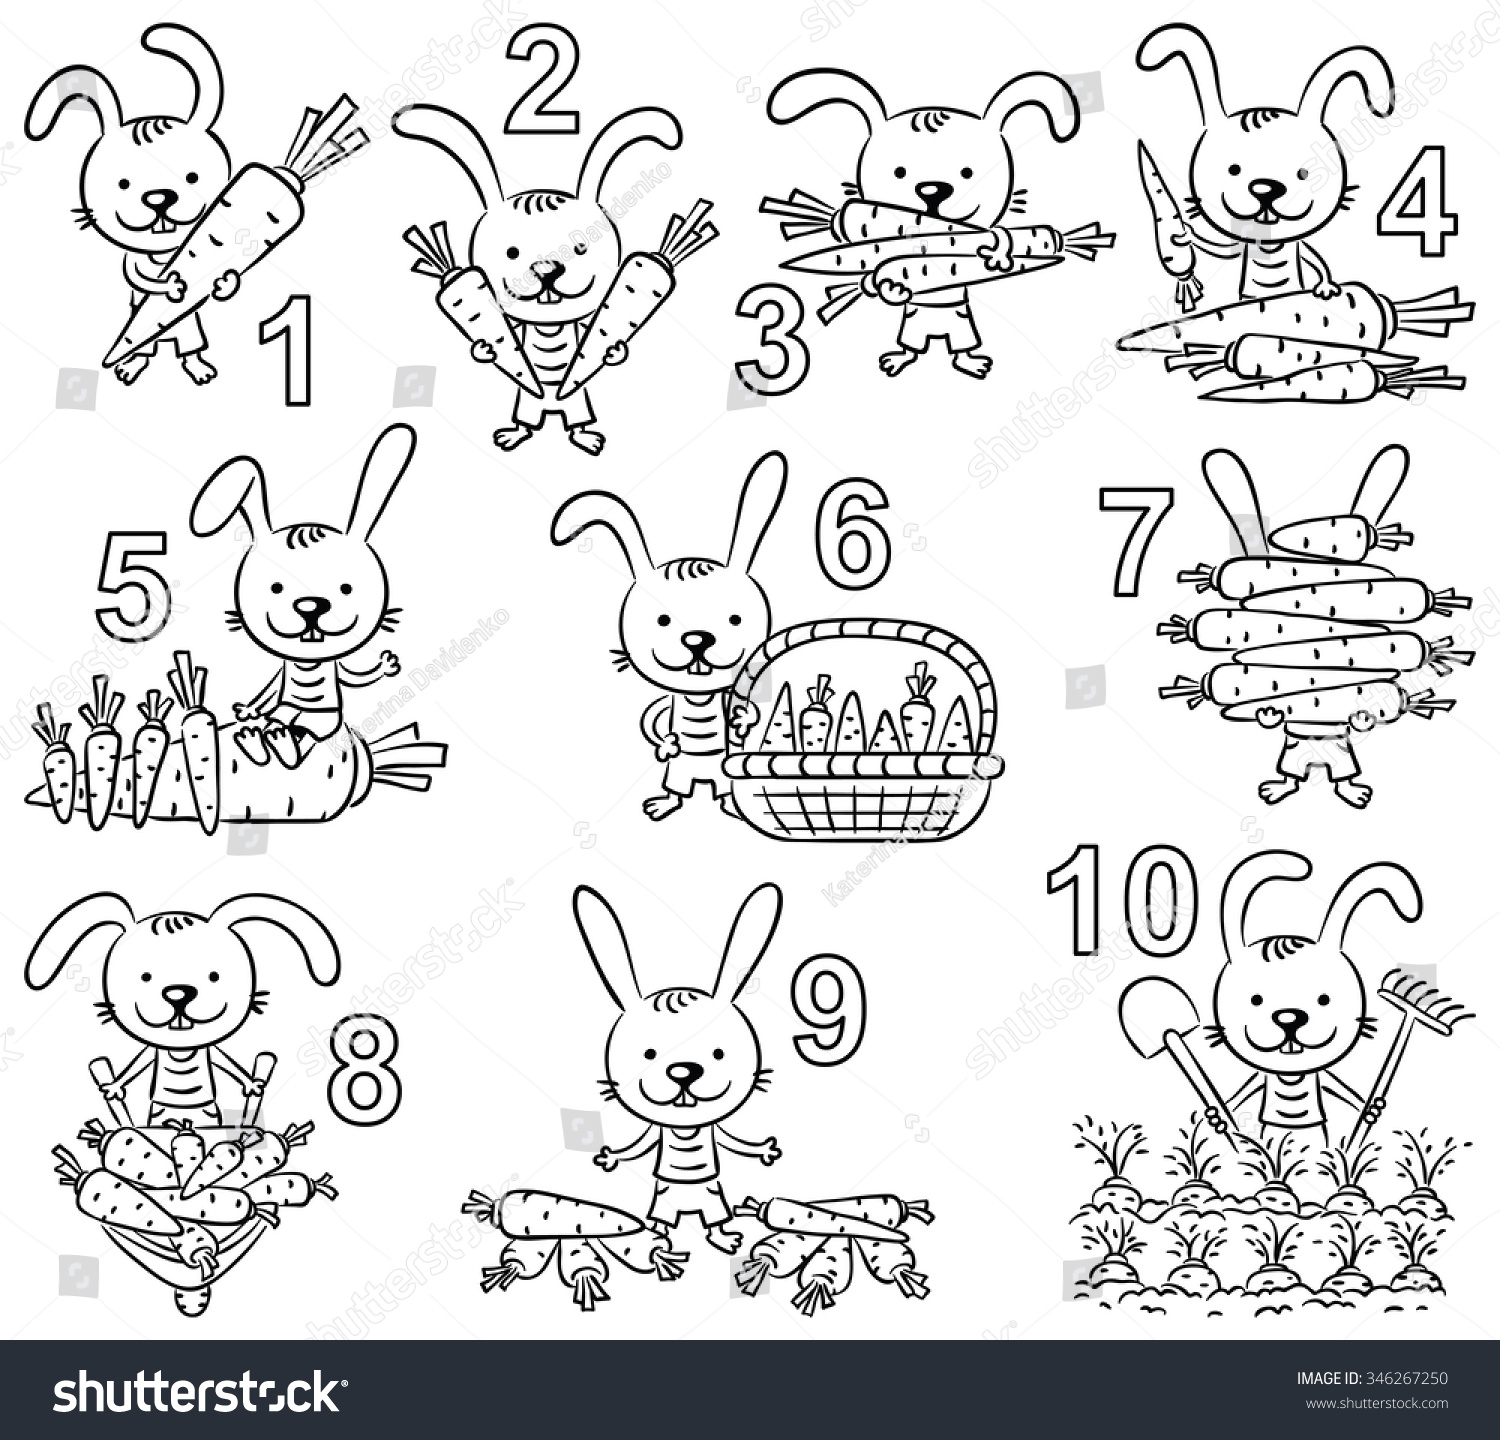 Coloring by numbers for rabbits - Numbers In Cartoon Pictures Set Rabbit And His Carrots Black And White Outline